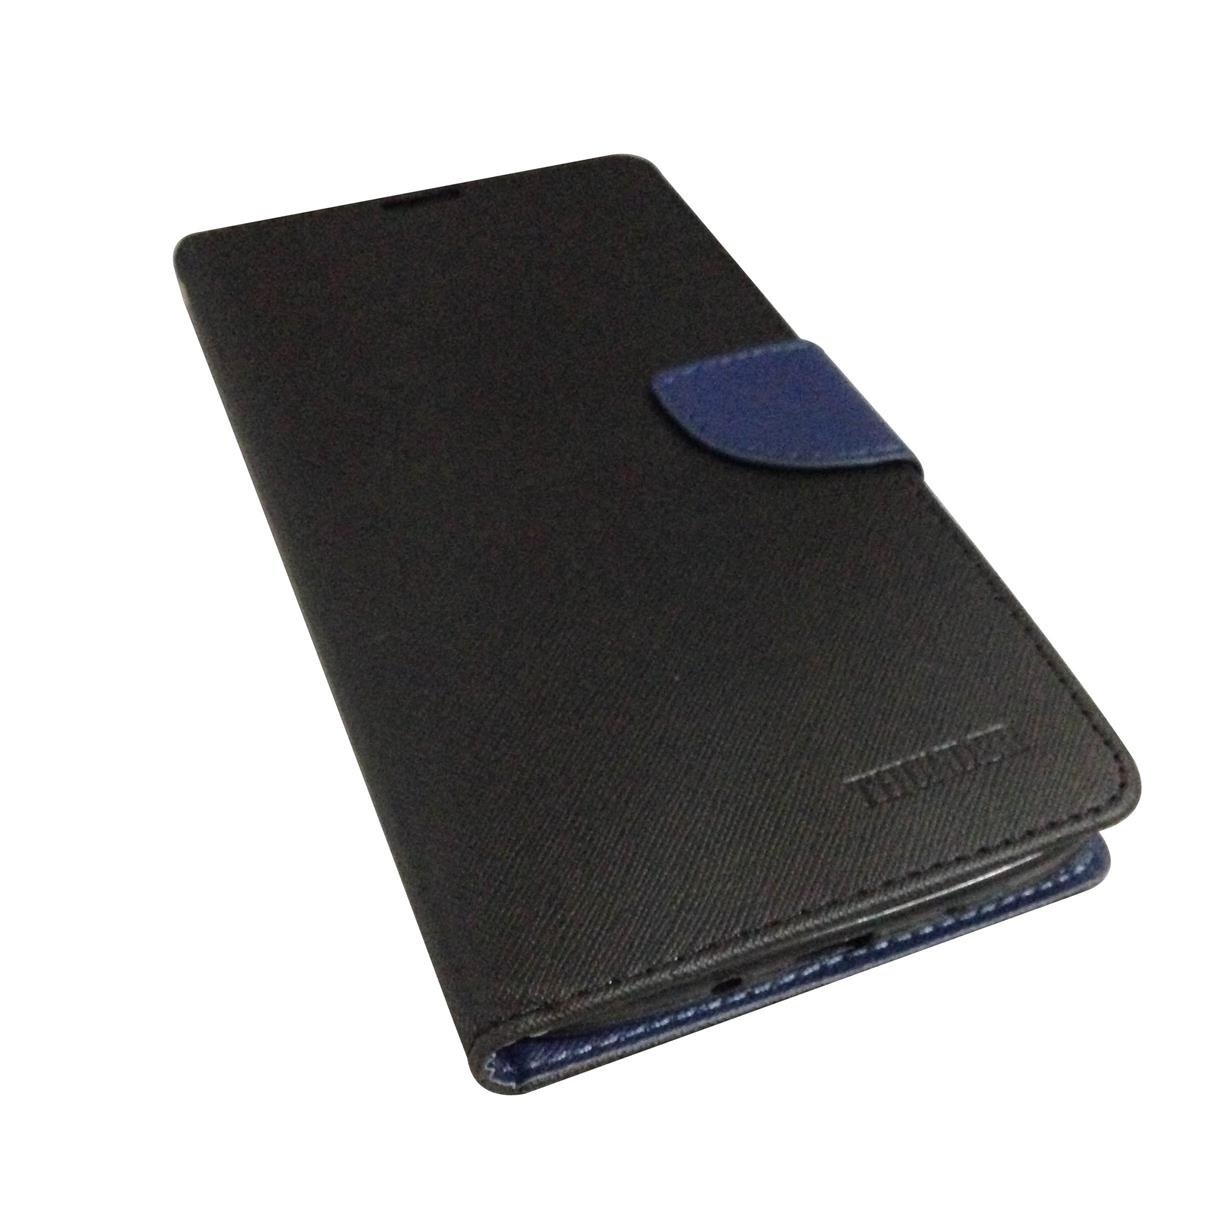 DIARY CASE for SAMSUNG GALAXY MEGA i9200 ( Black )